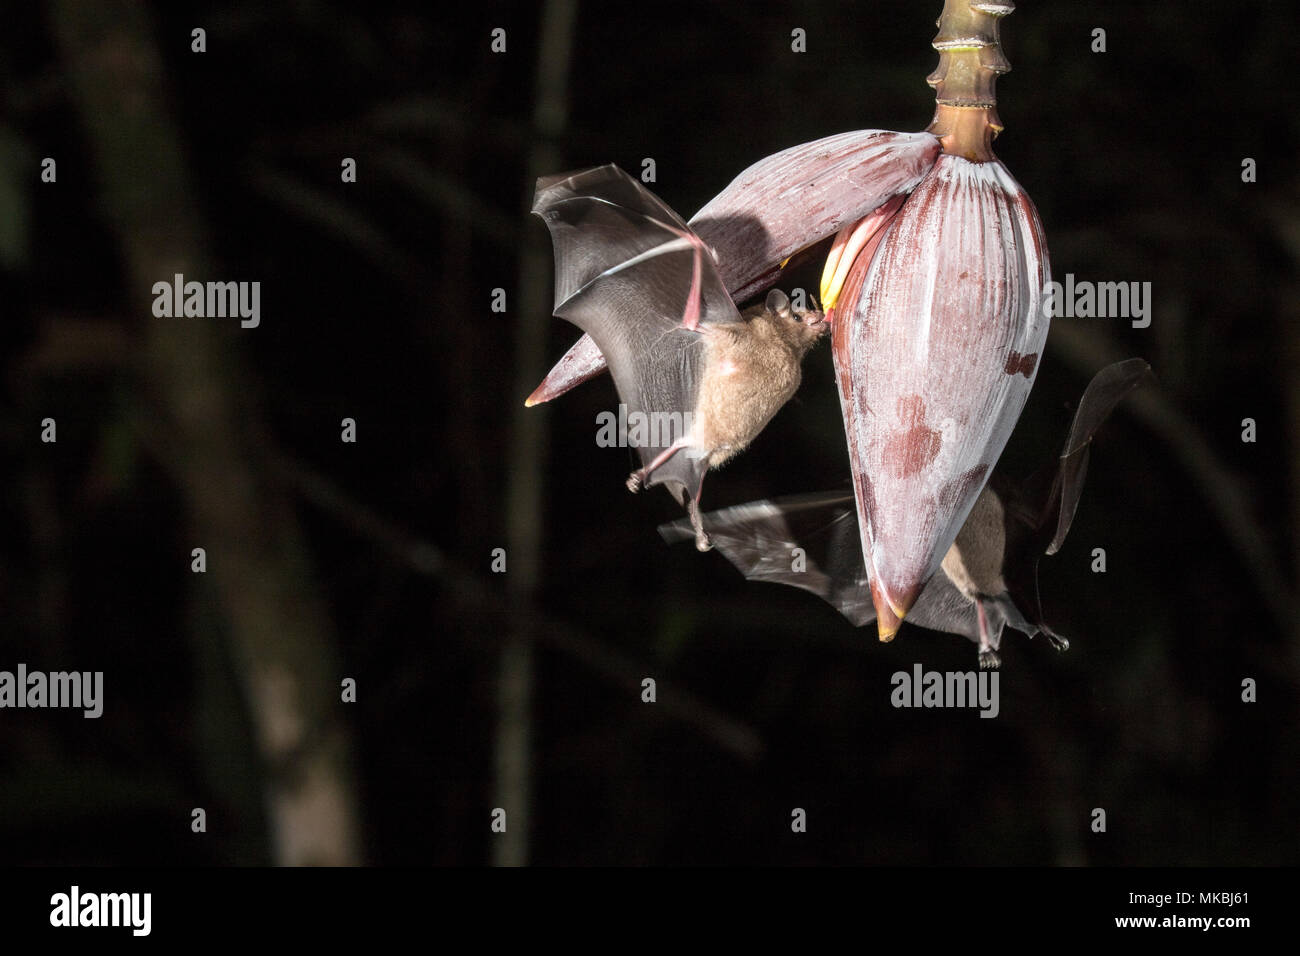 bat feeding on nectar of flower in tropical rainforest at night - Stock Image